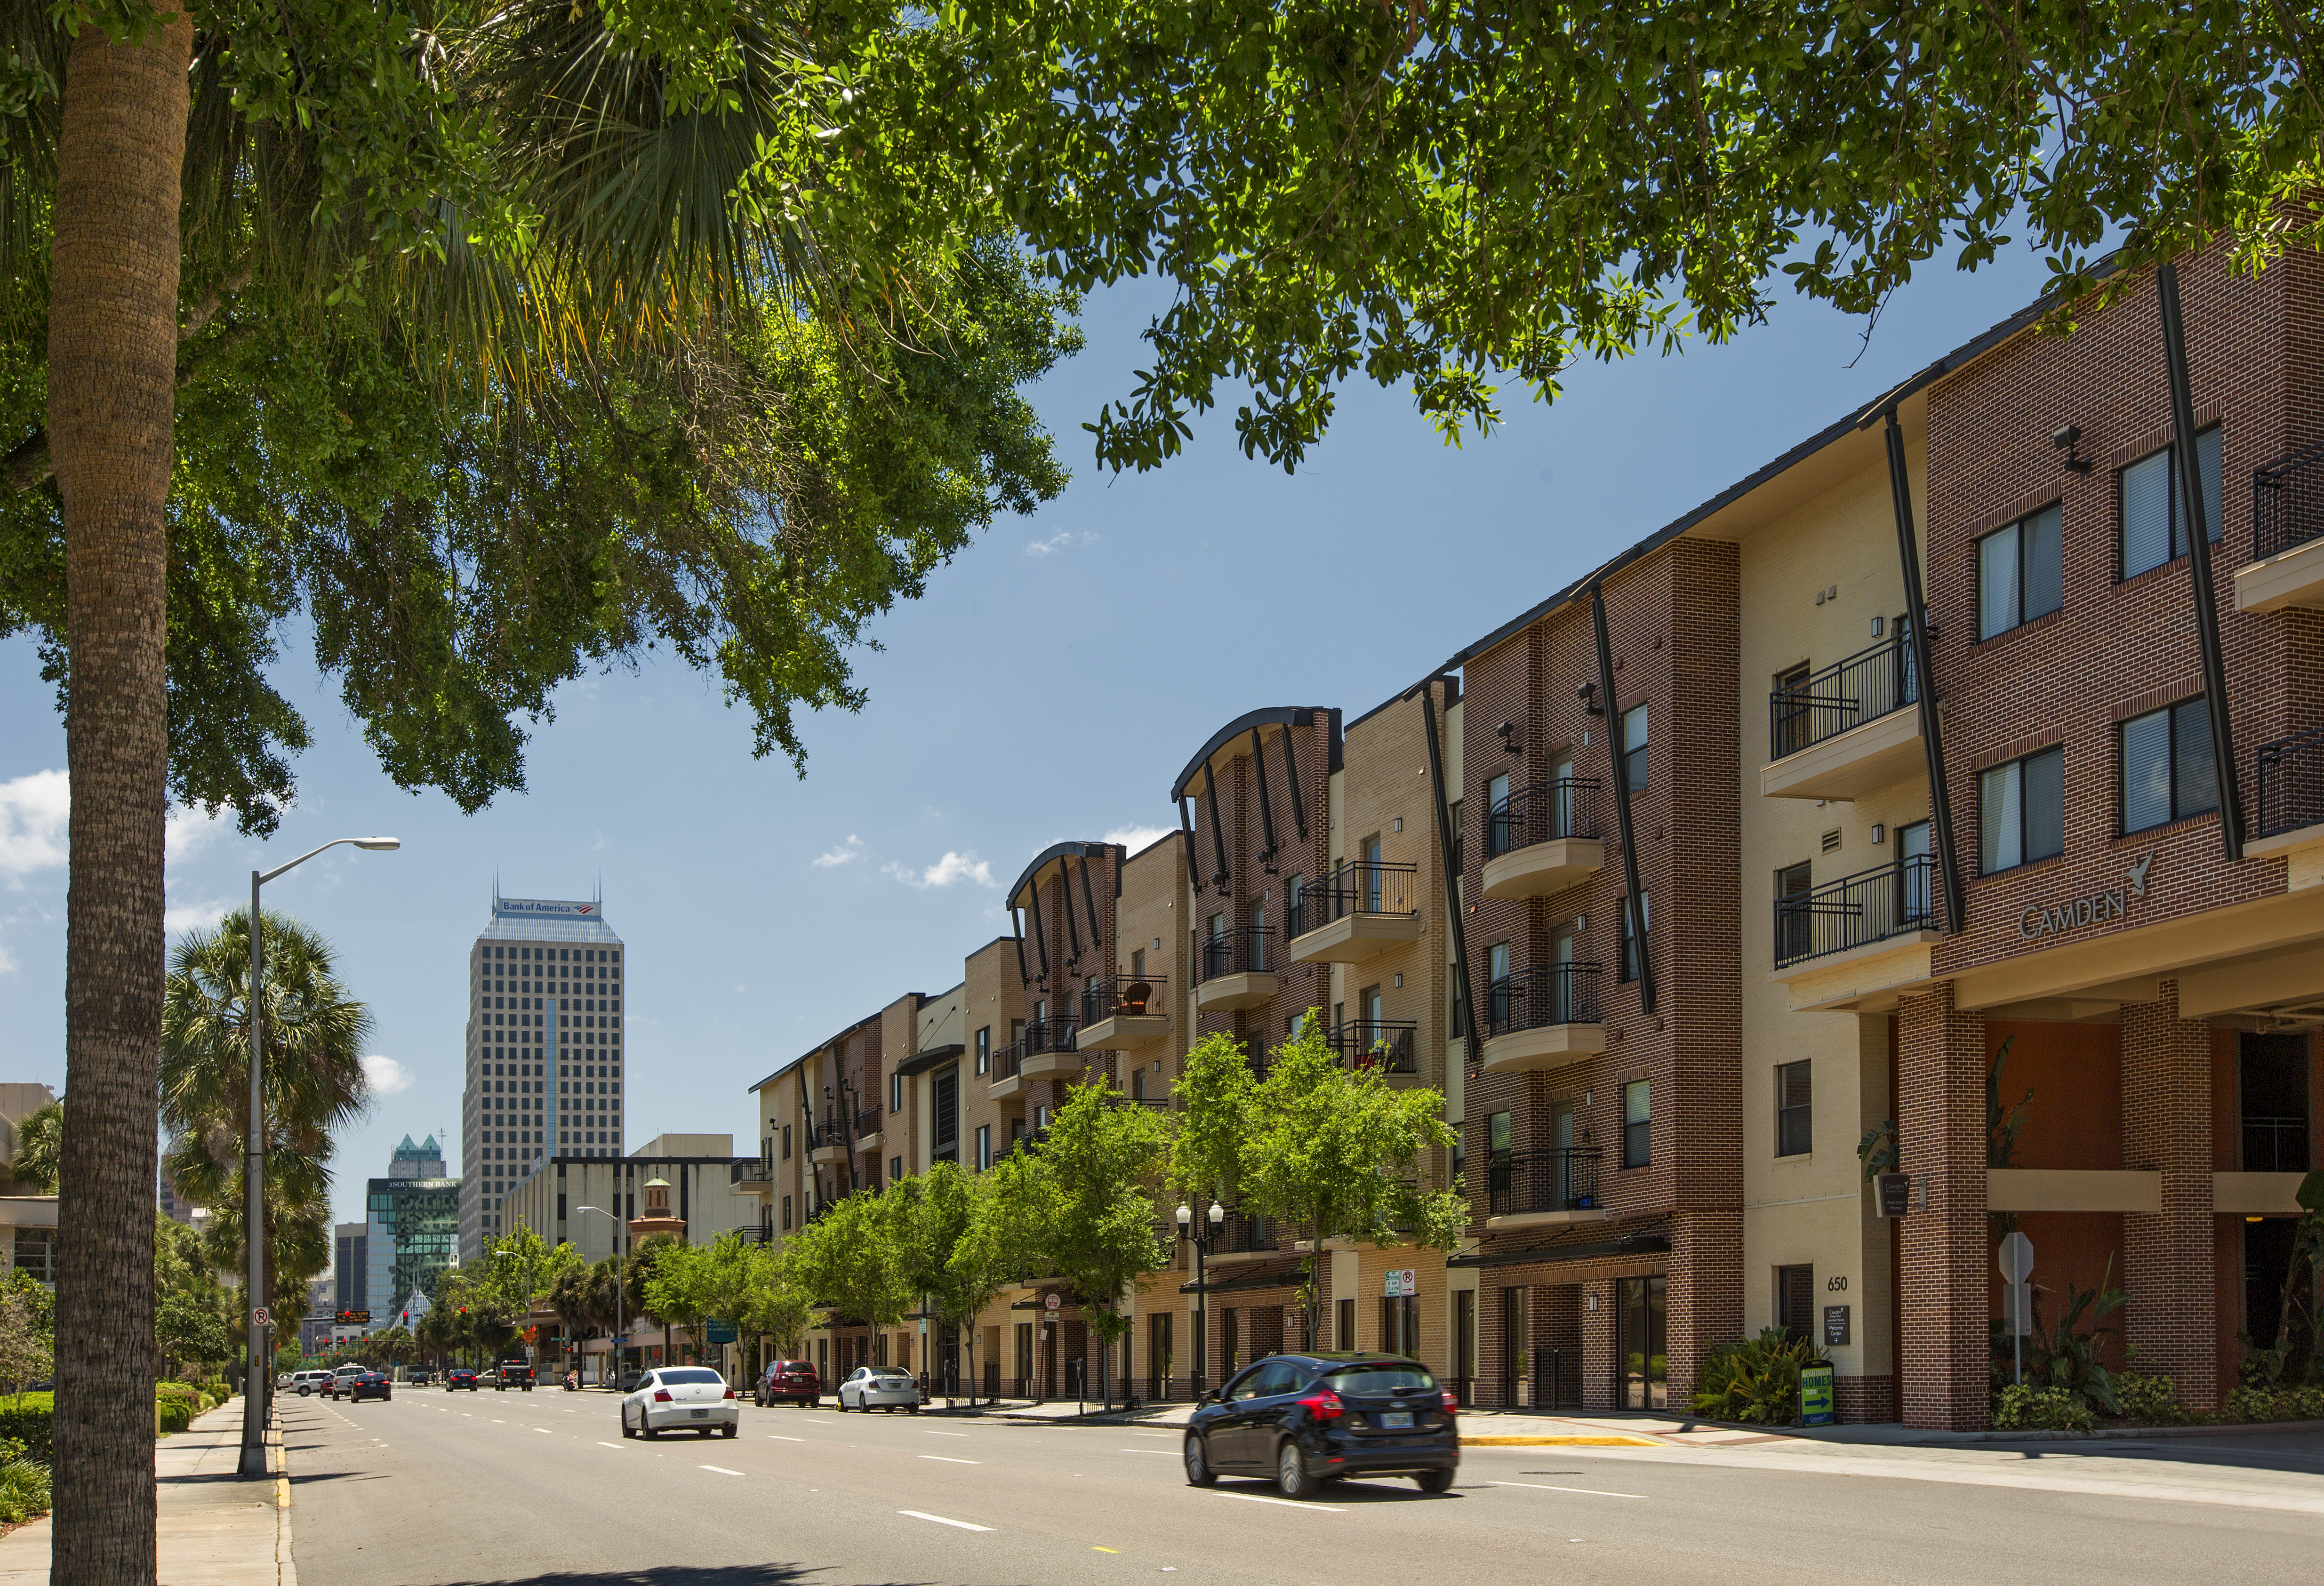 apartments for rent in orlando fl camden orange court cheap 2 bedroom  apartments in orlando fl. 2 Bedroom Apartments In Fl  2 Bedroom Apartments For Rent In